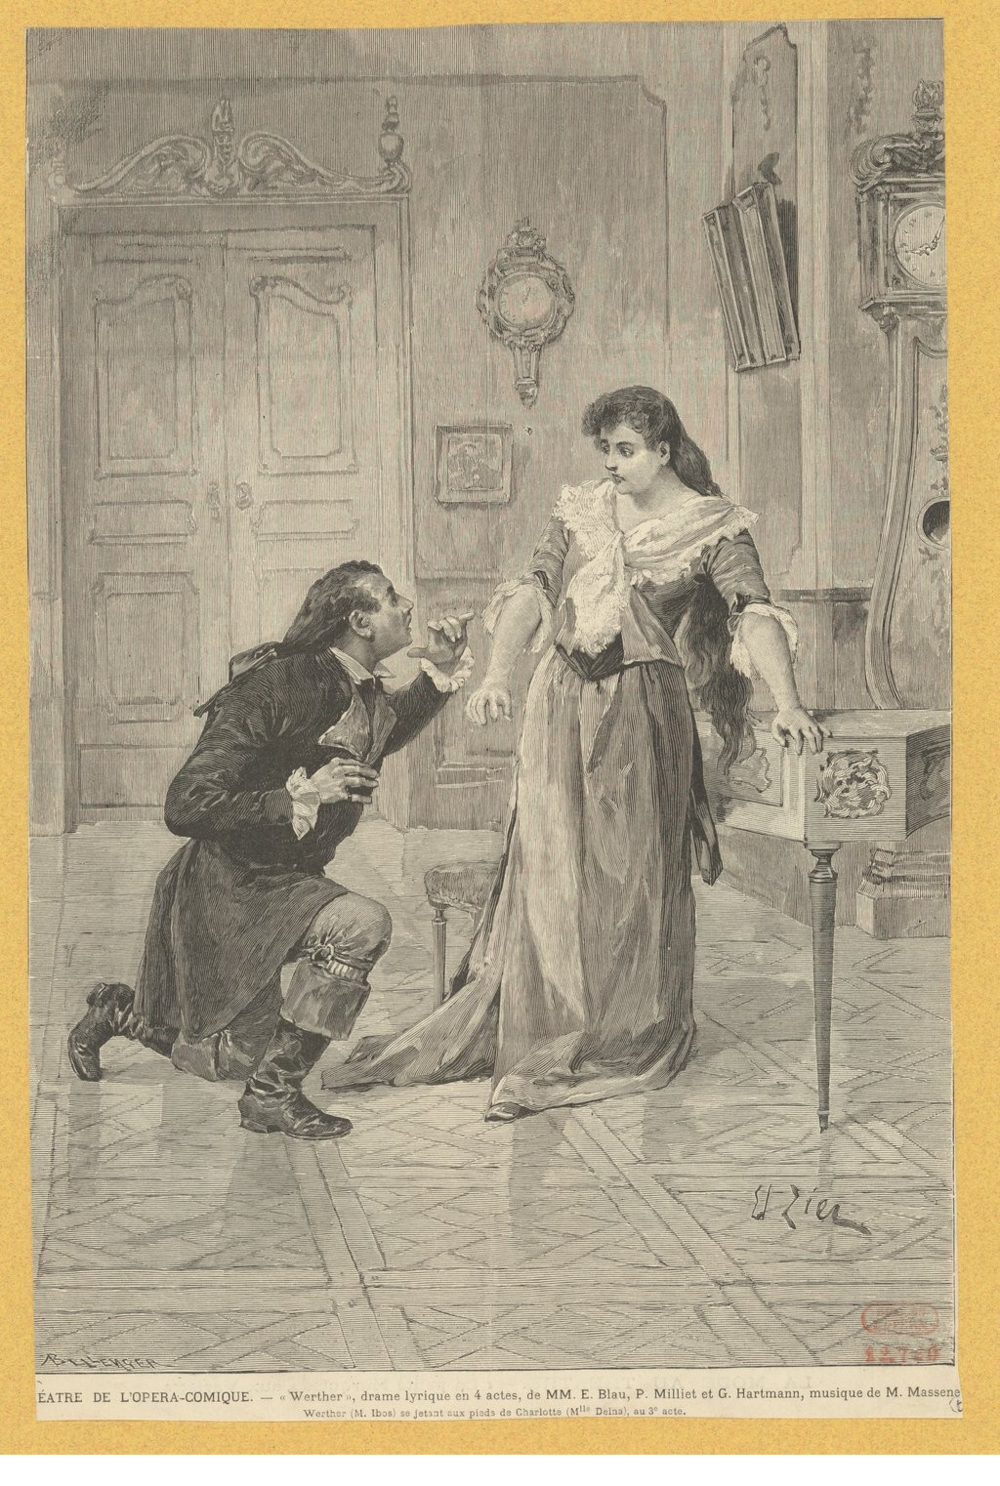 Delna as Charlotte (with Guillaume Ibos as Werther)